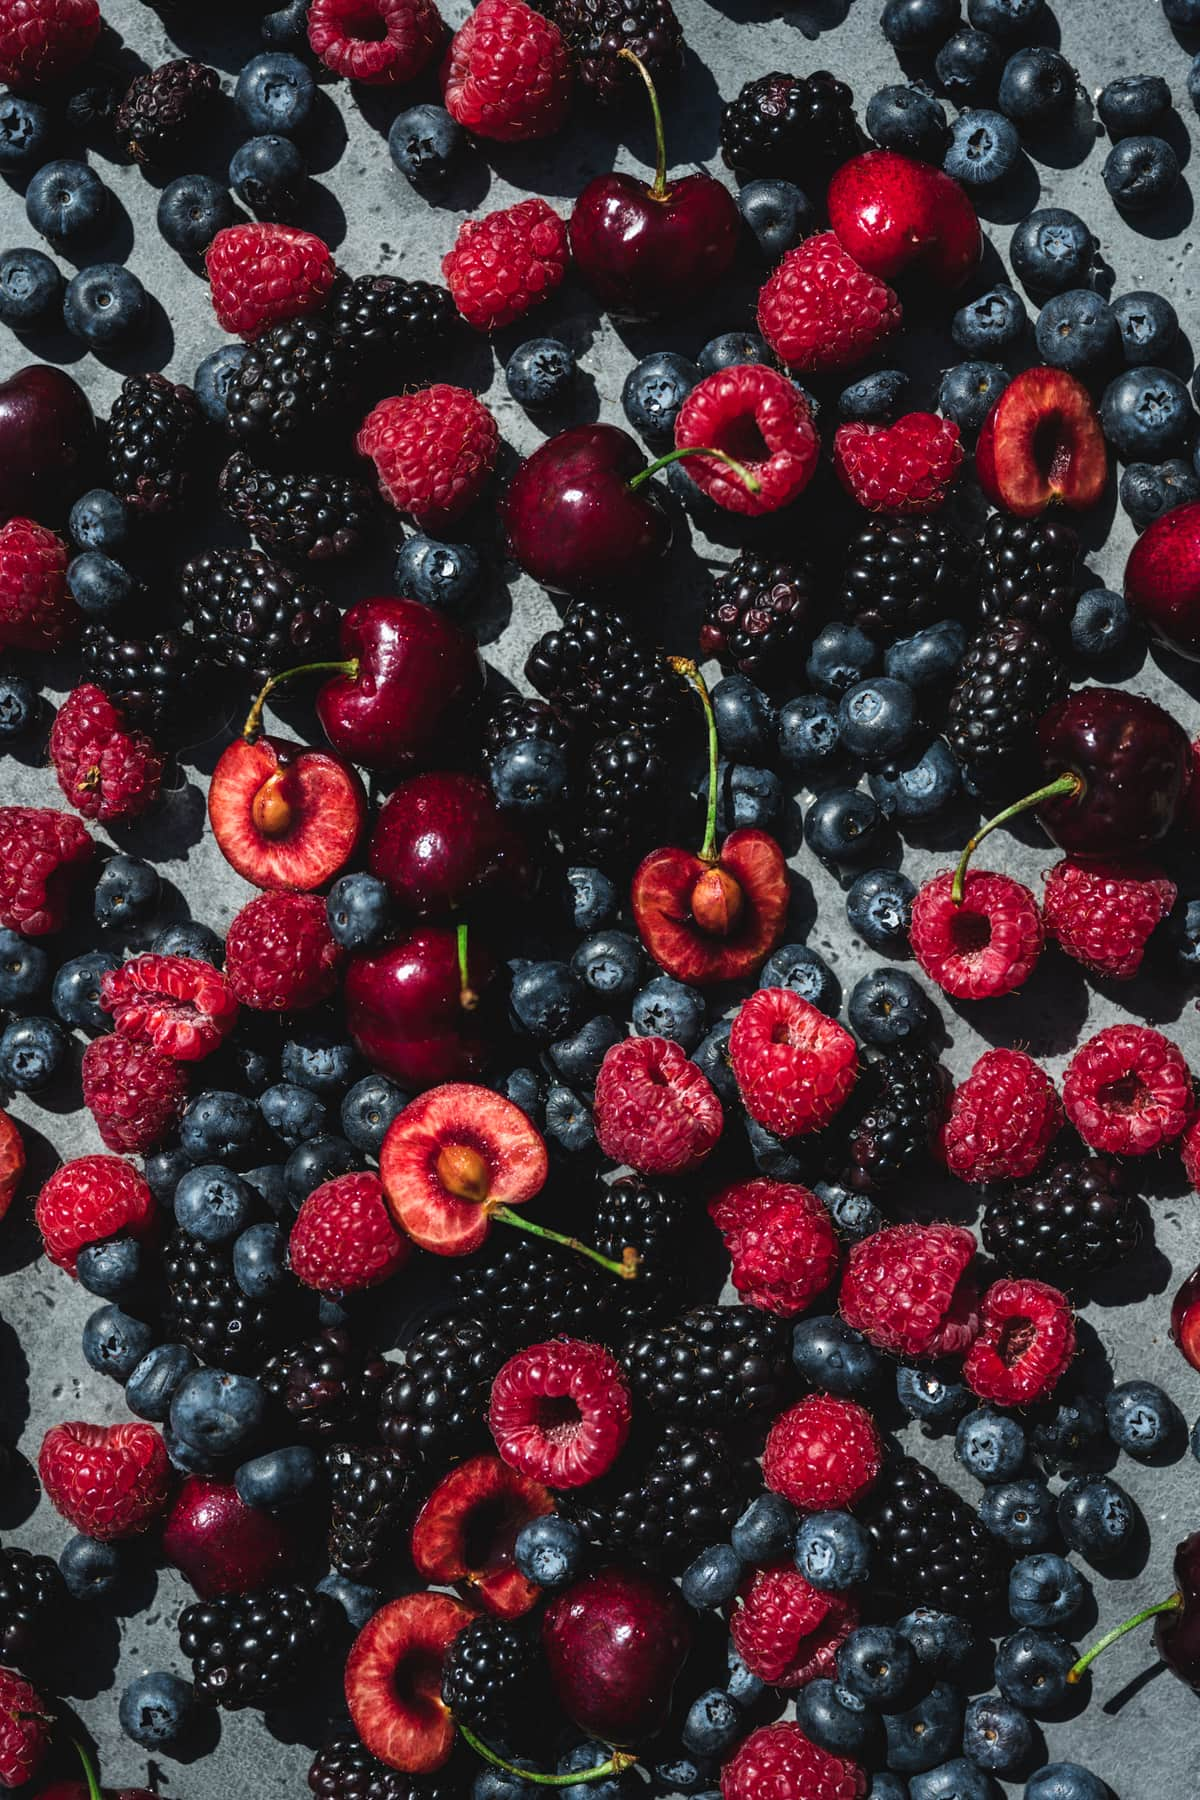 overhead view of mixed fresh berries in direct sunlight